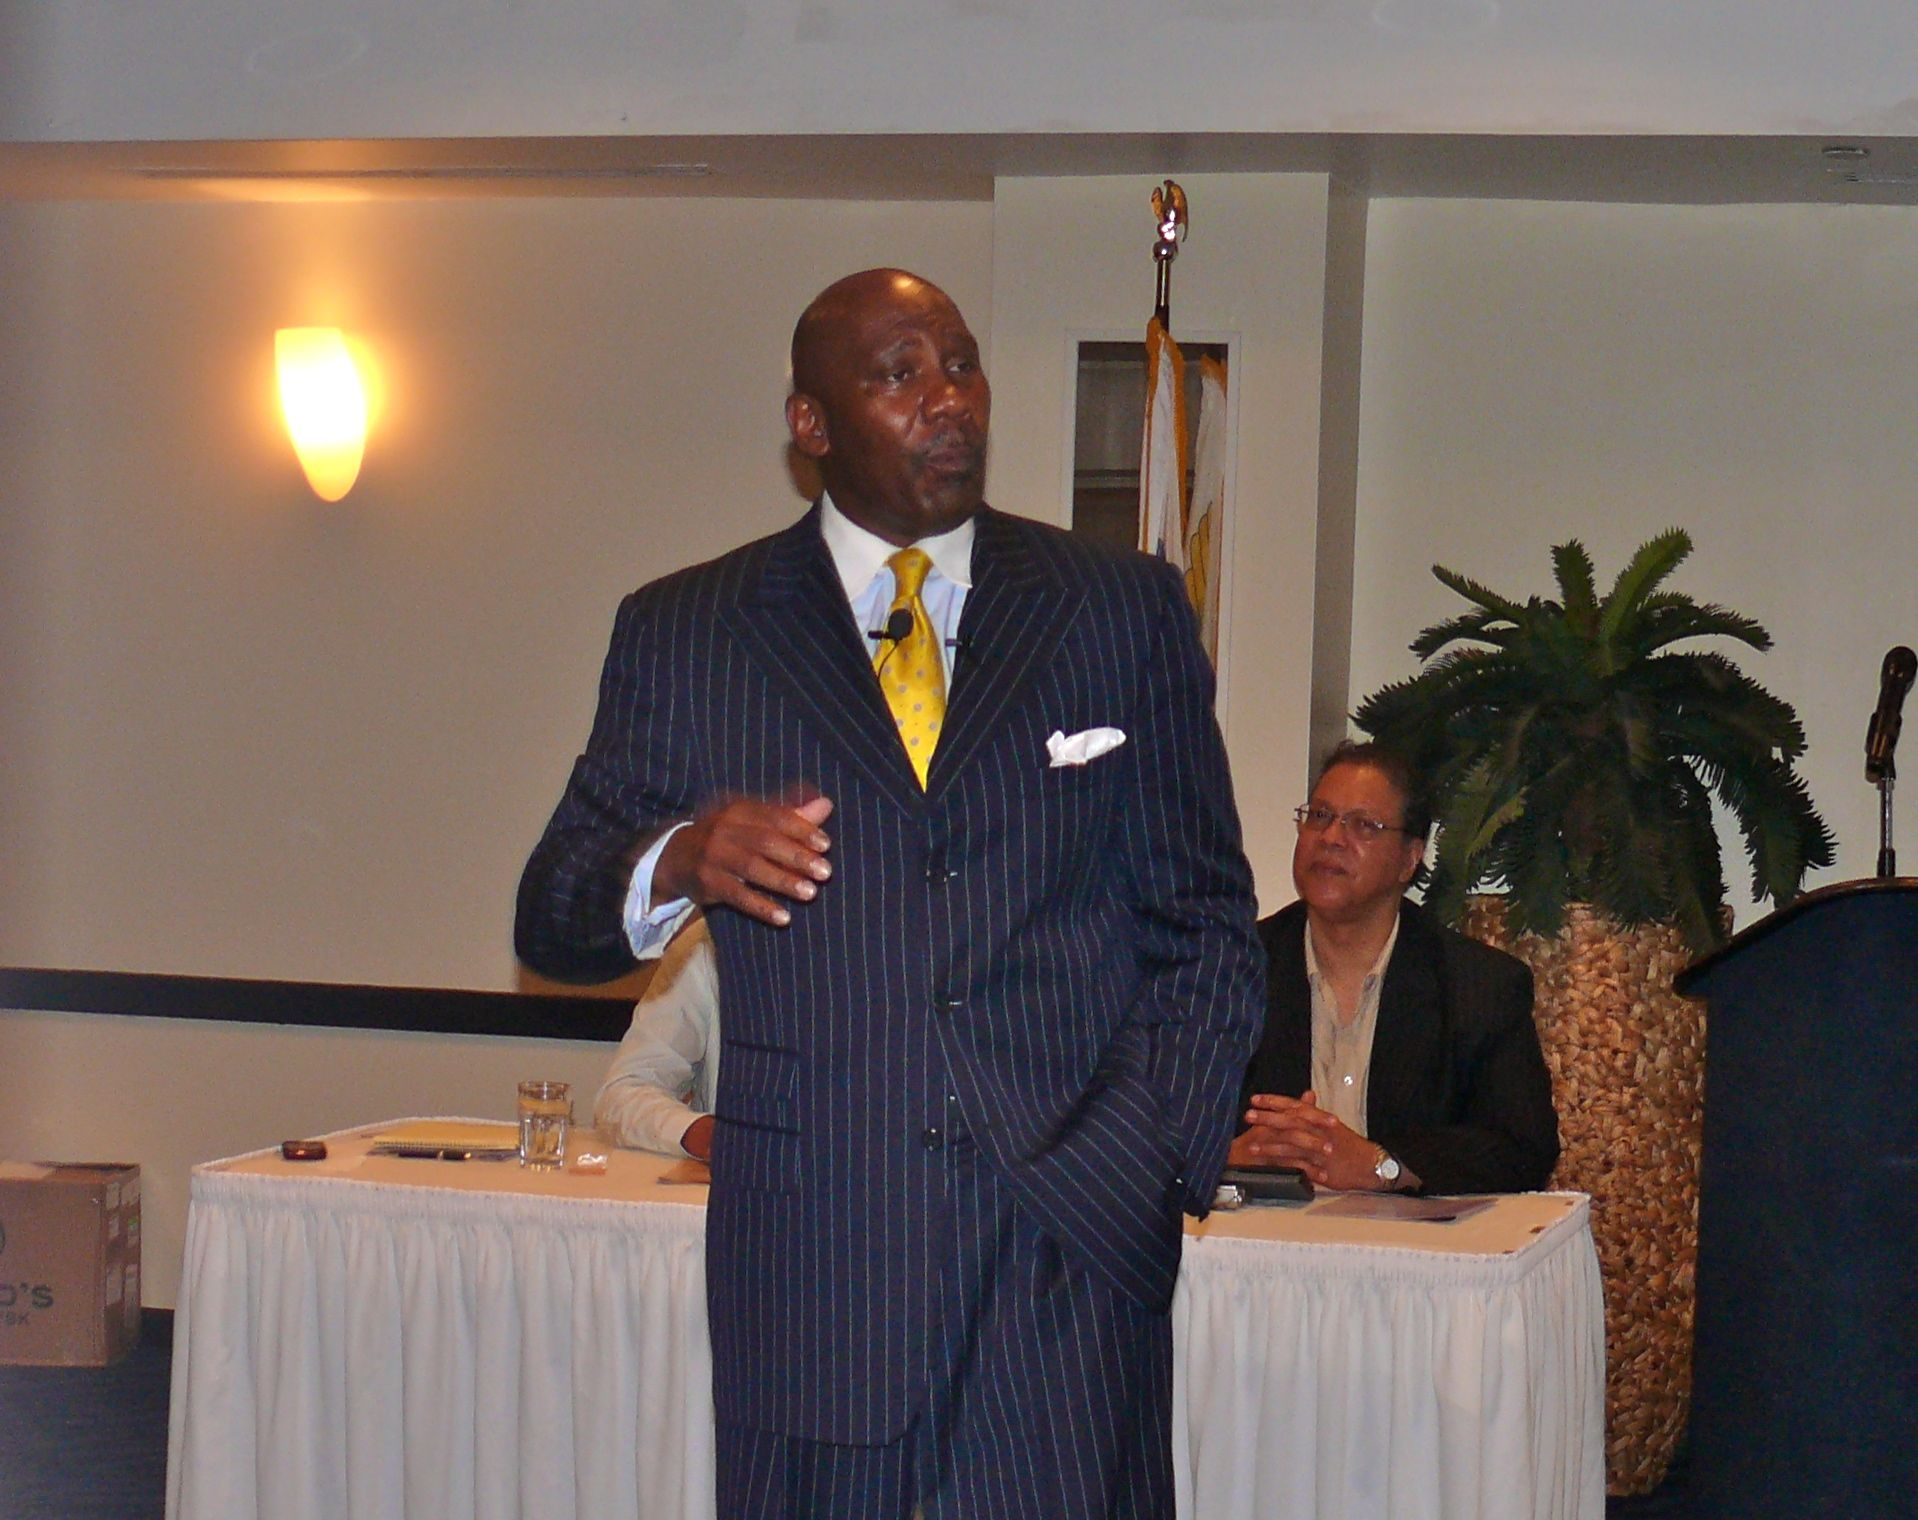 Motivational speaker Columbus Copeland looked to inspire laid-off workers during Monday's event at Divi Carina Bay Resort.